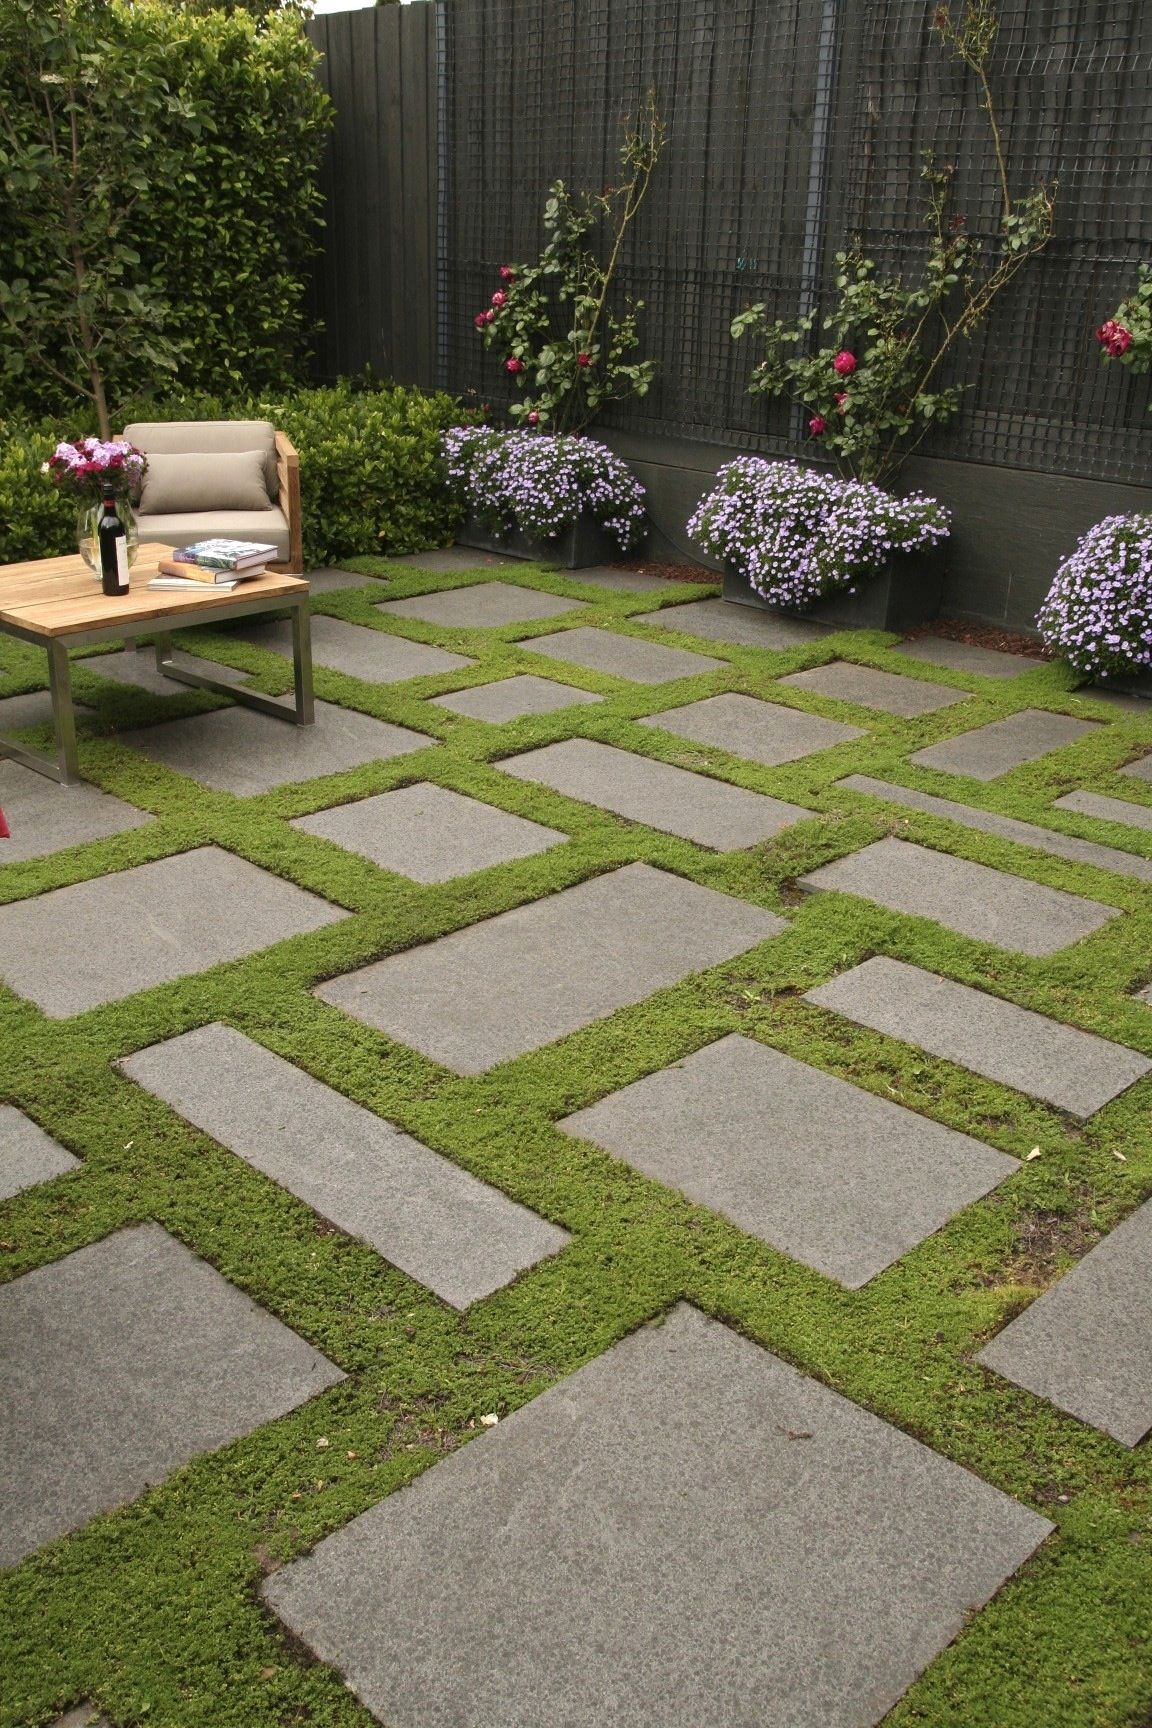 bluestone slabs and groundcover gives a carpet effect in this cosy courtyard - Garden Tiles